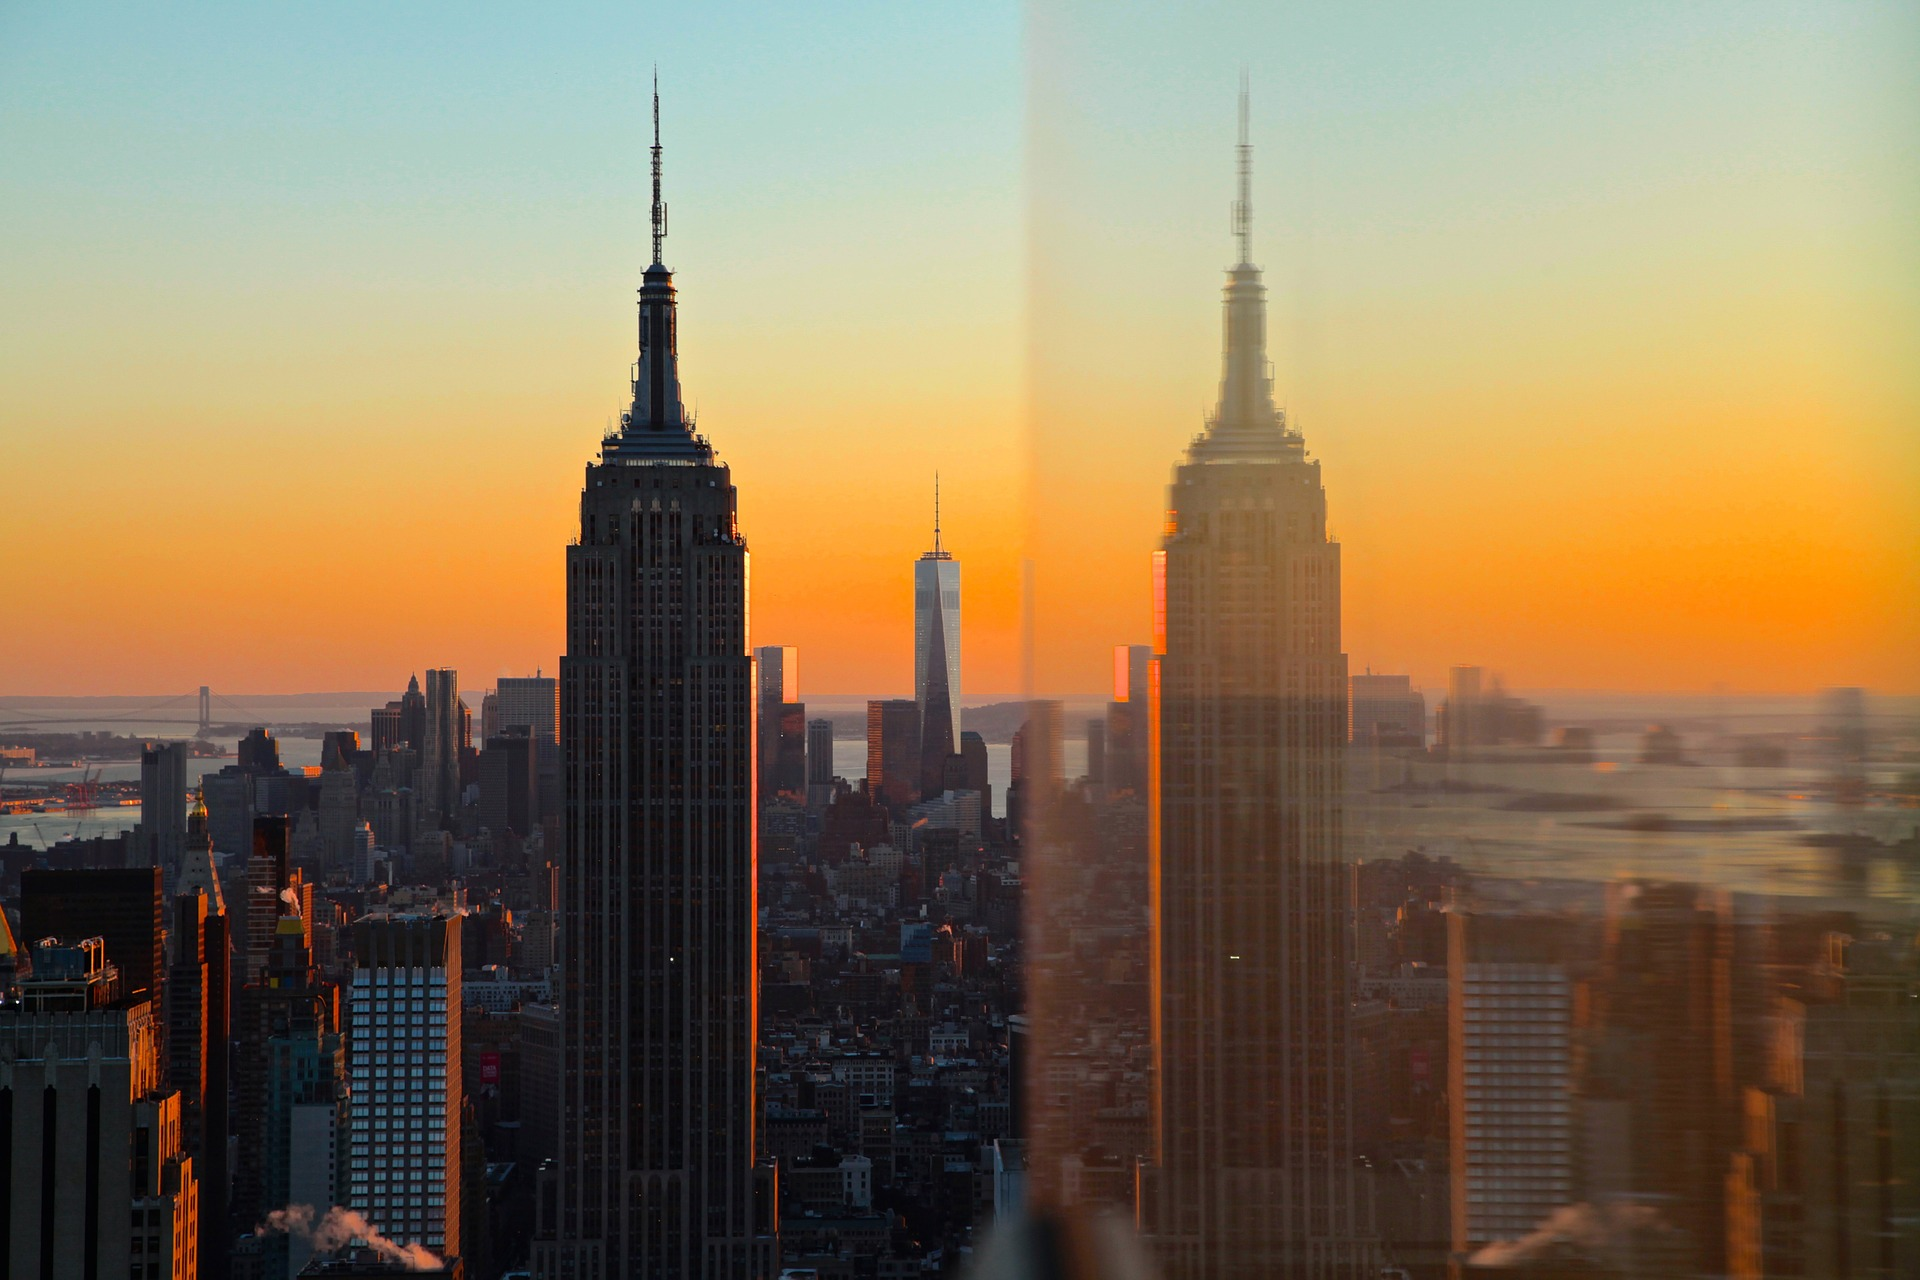 empire-state-building-828777_1920_1.jpg